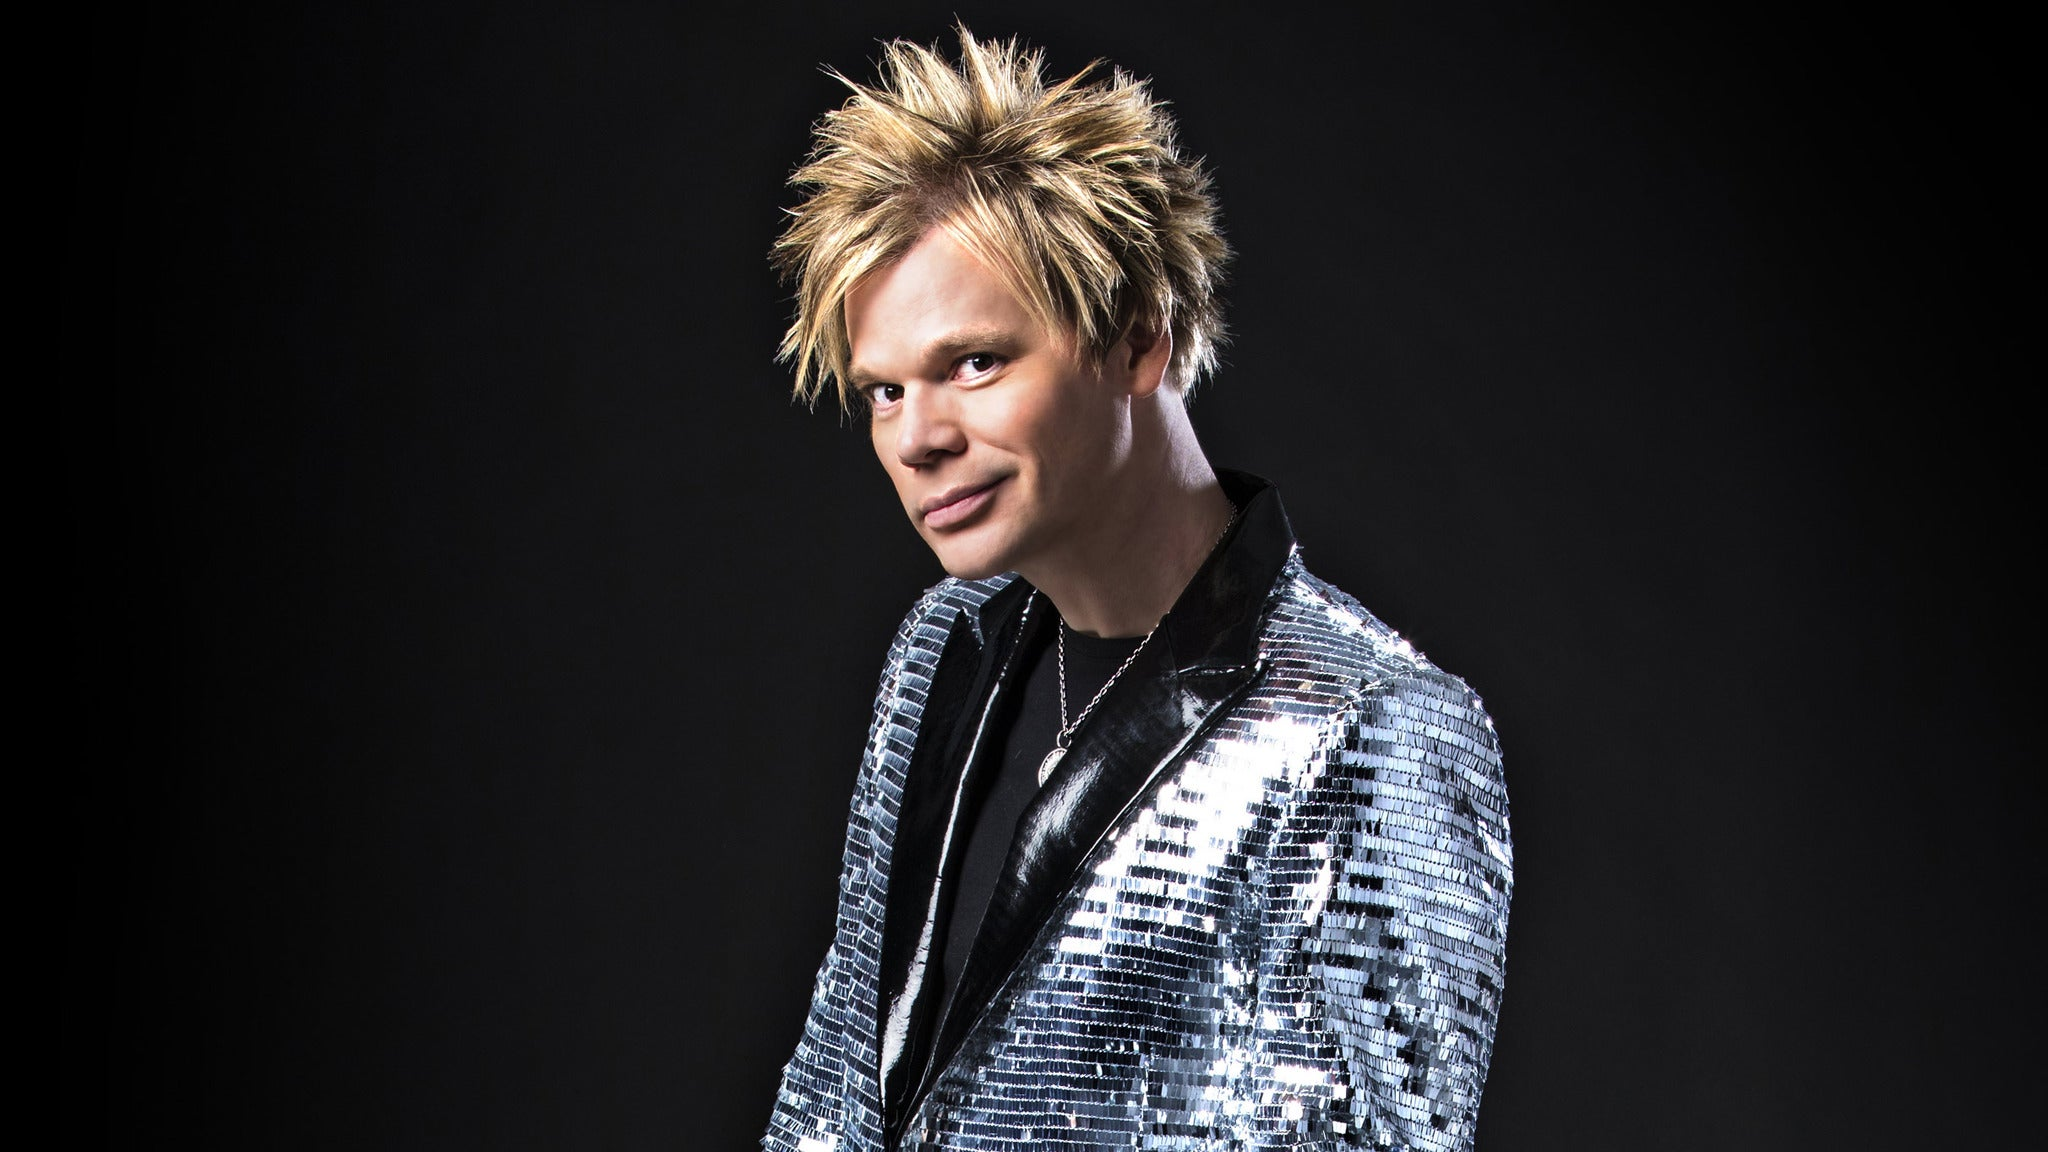 Brian Culbertson at Wolf Creek Amphitheater